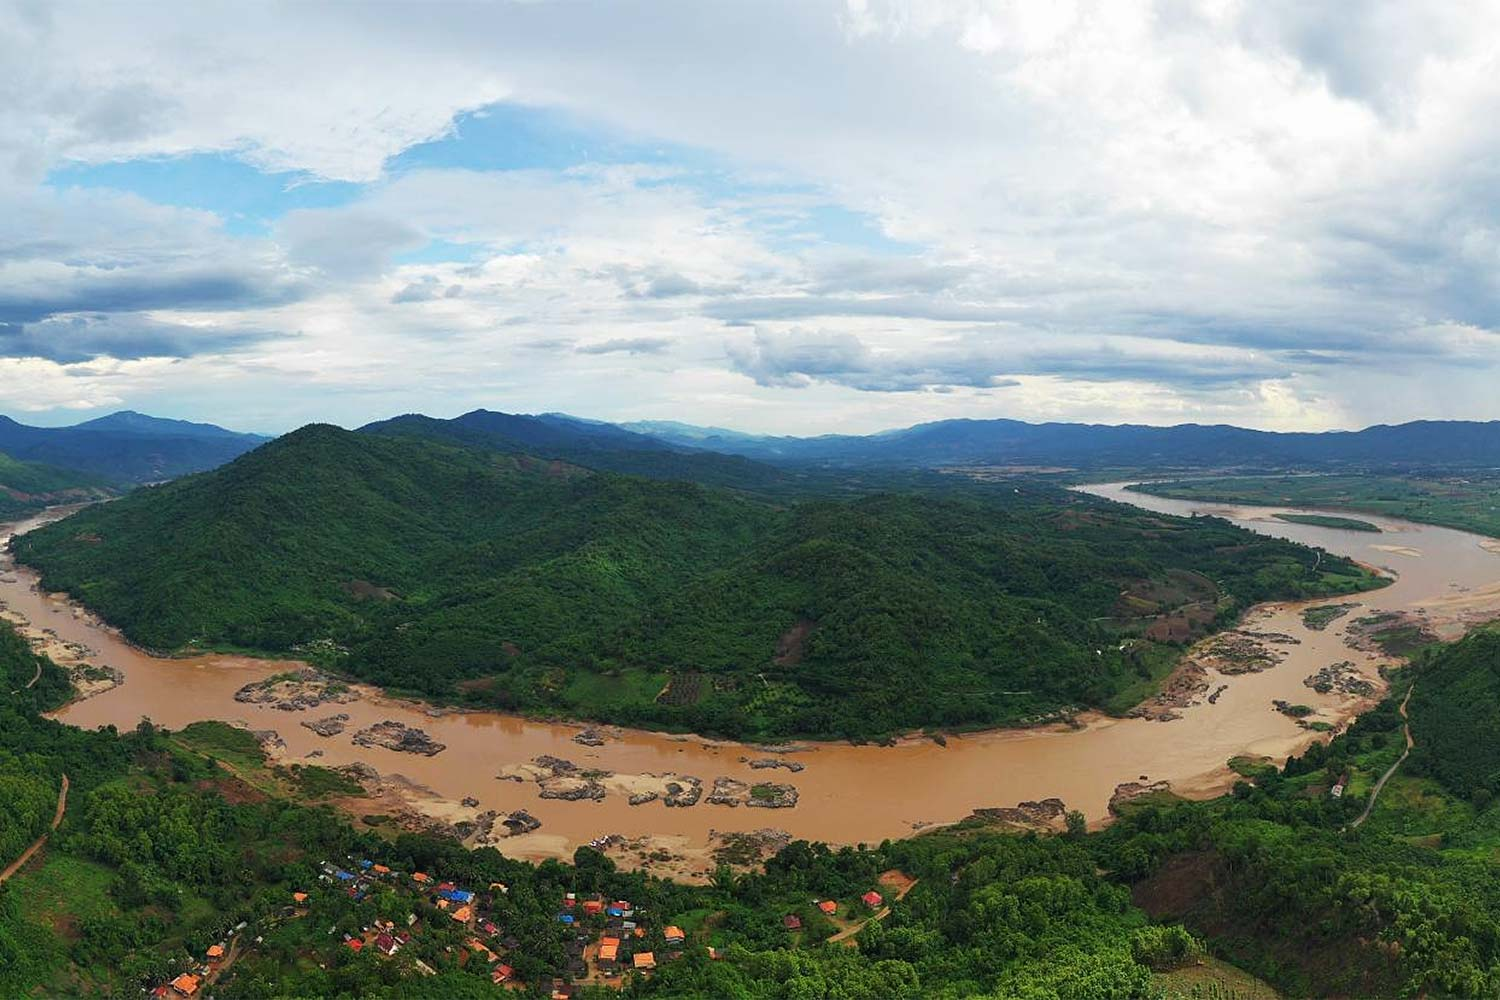 Photo of the Mekong River on the Thai-Lao border in Chiang Rai in July 2019. (Photo by Sommai Iaopradistha)